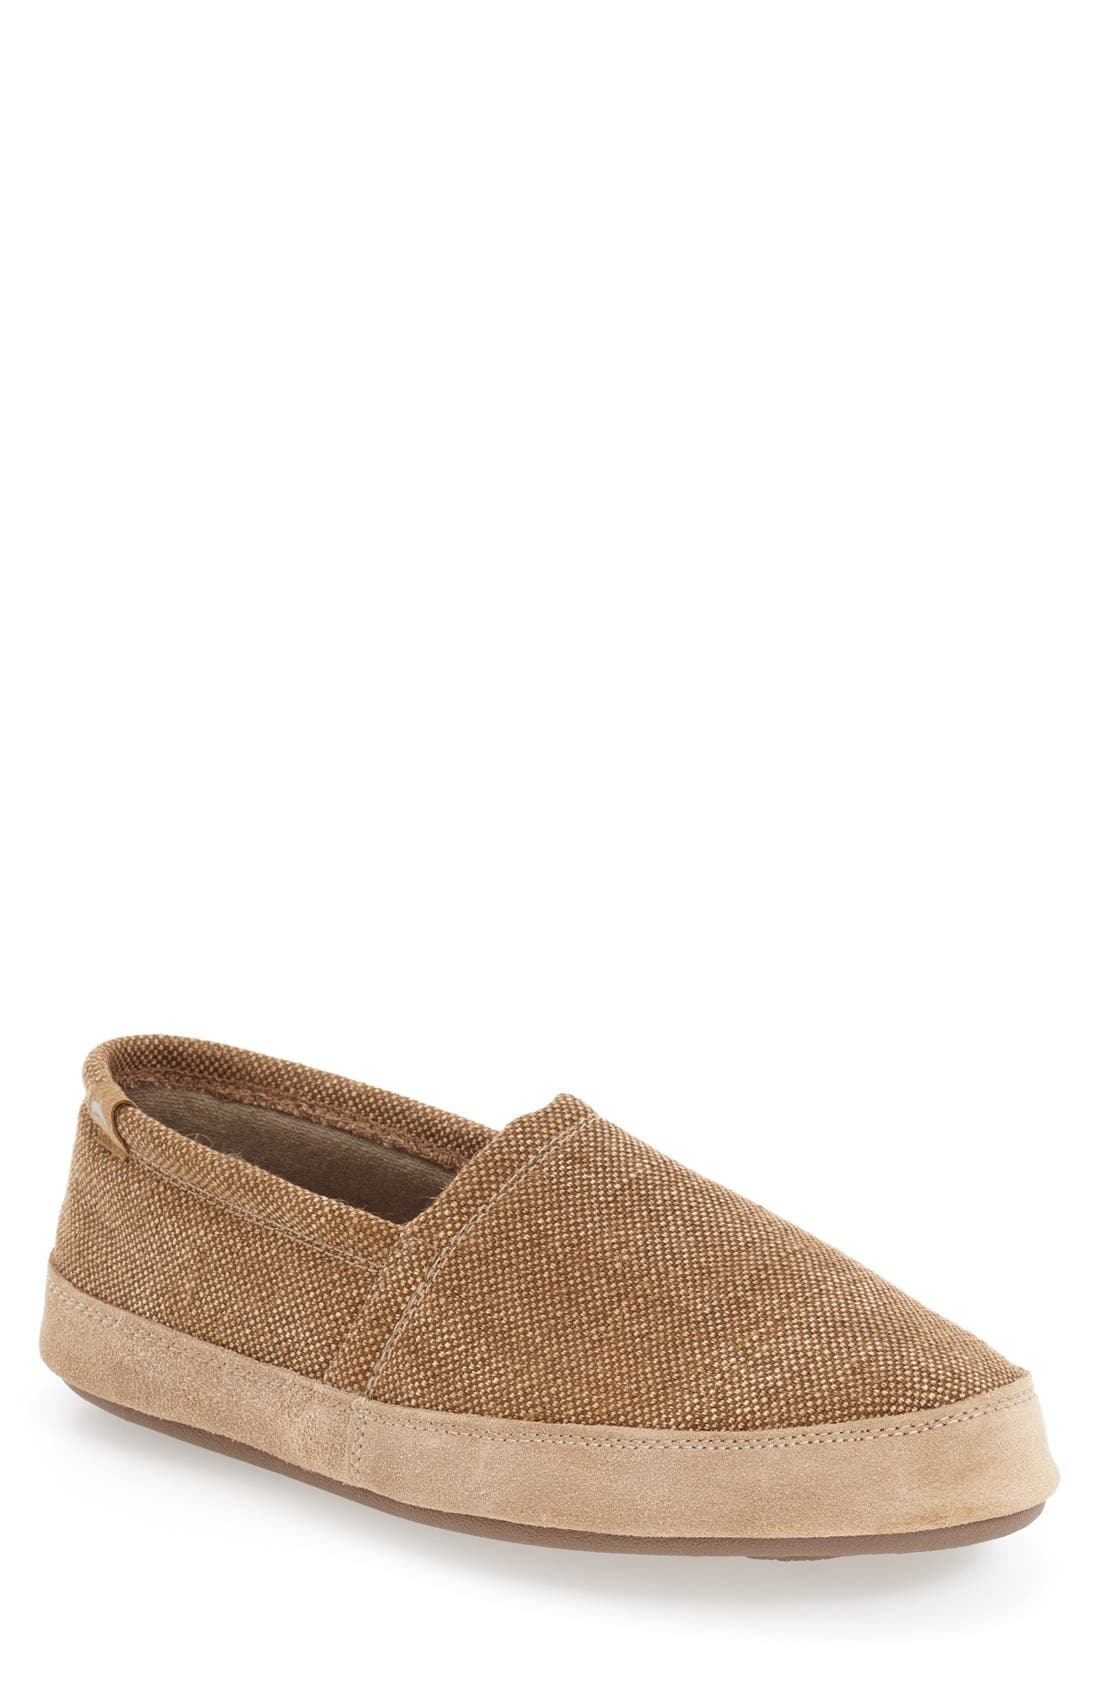 Moc Slipper,                             Main thumbnail 1, color,                             Toast Canvas